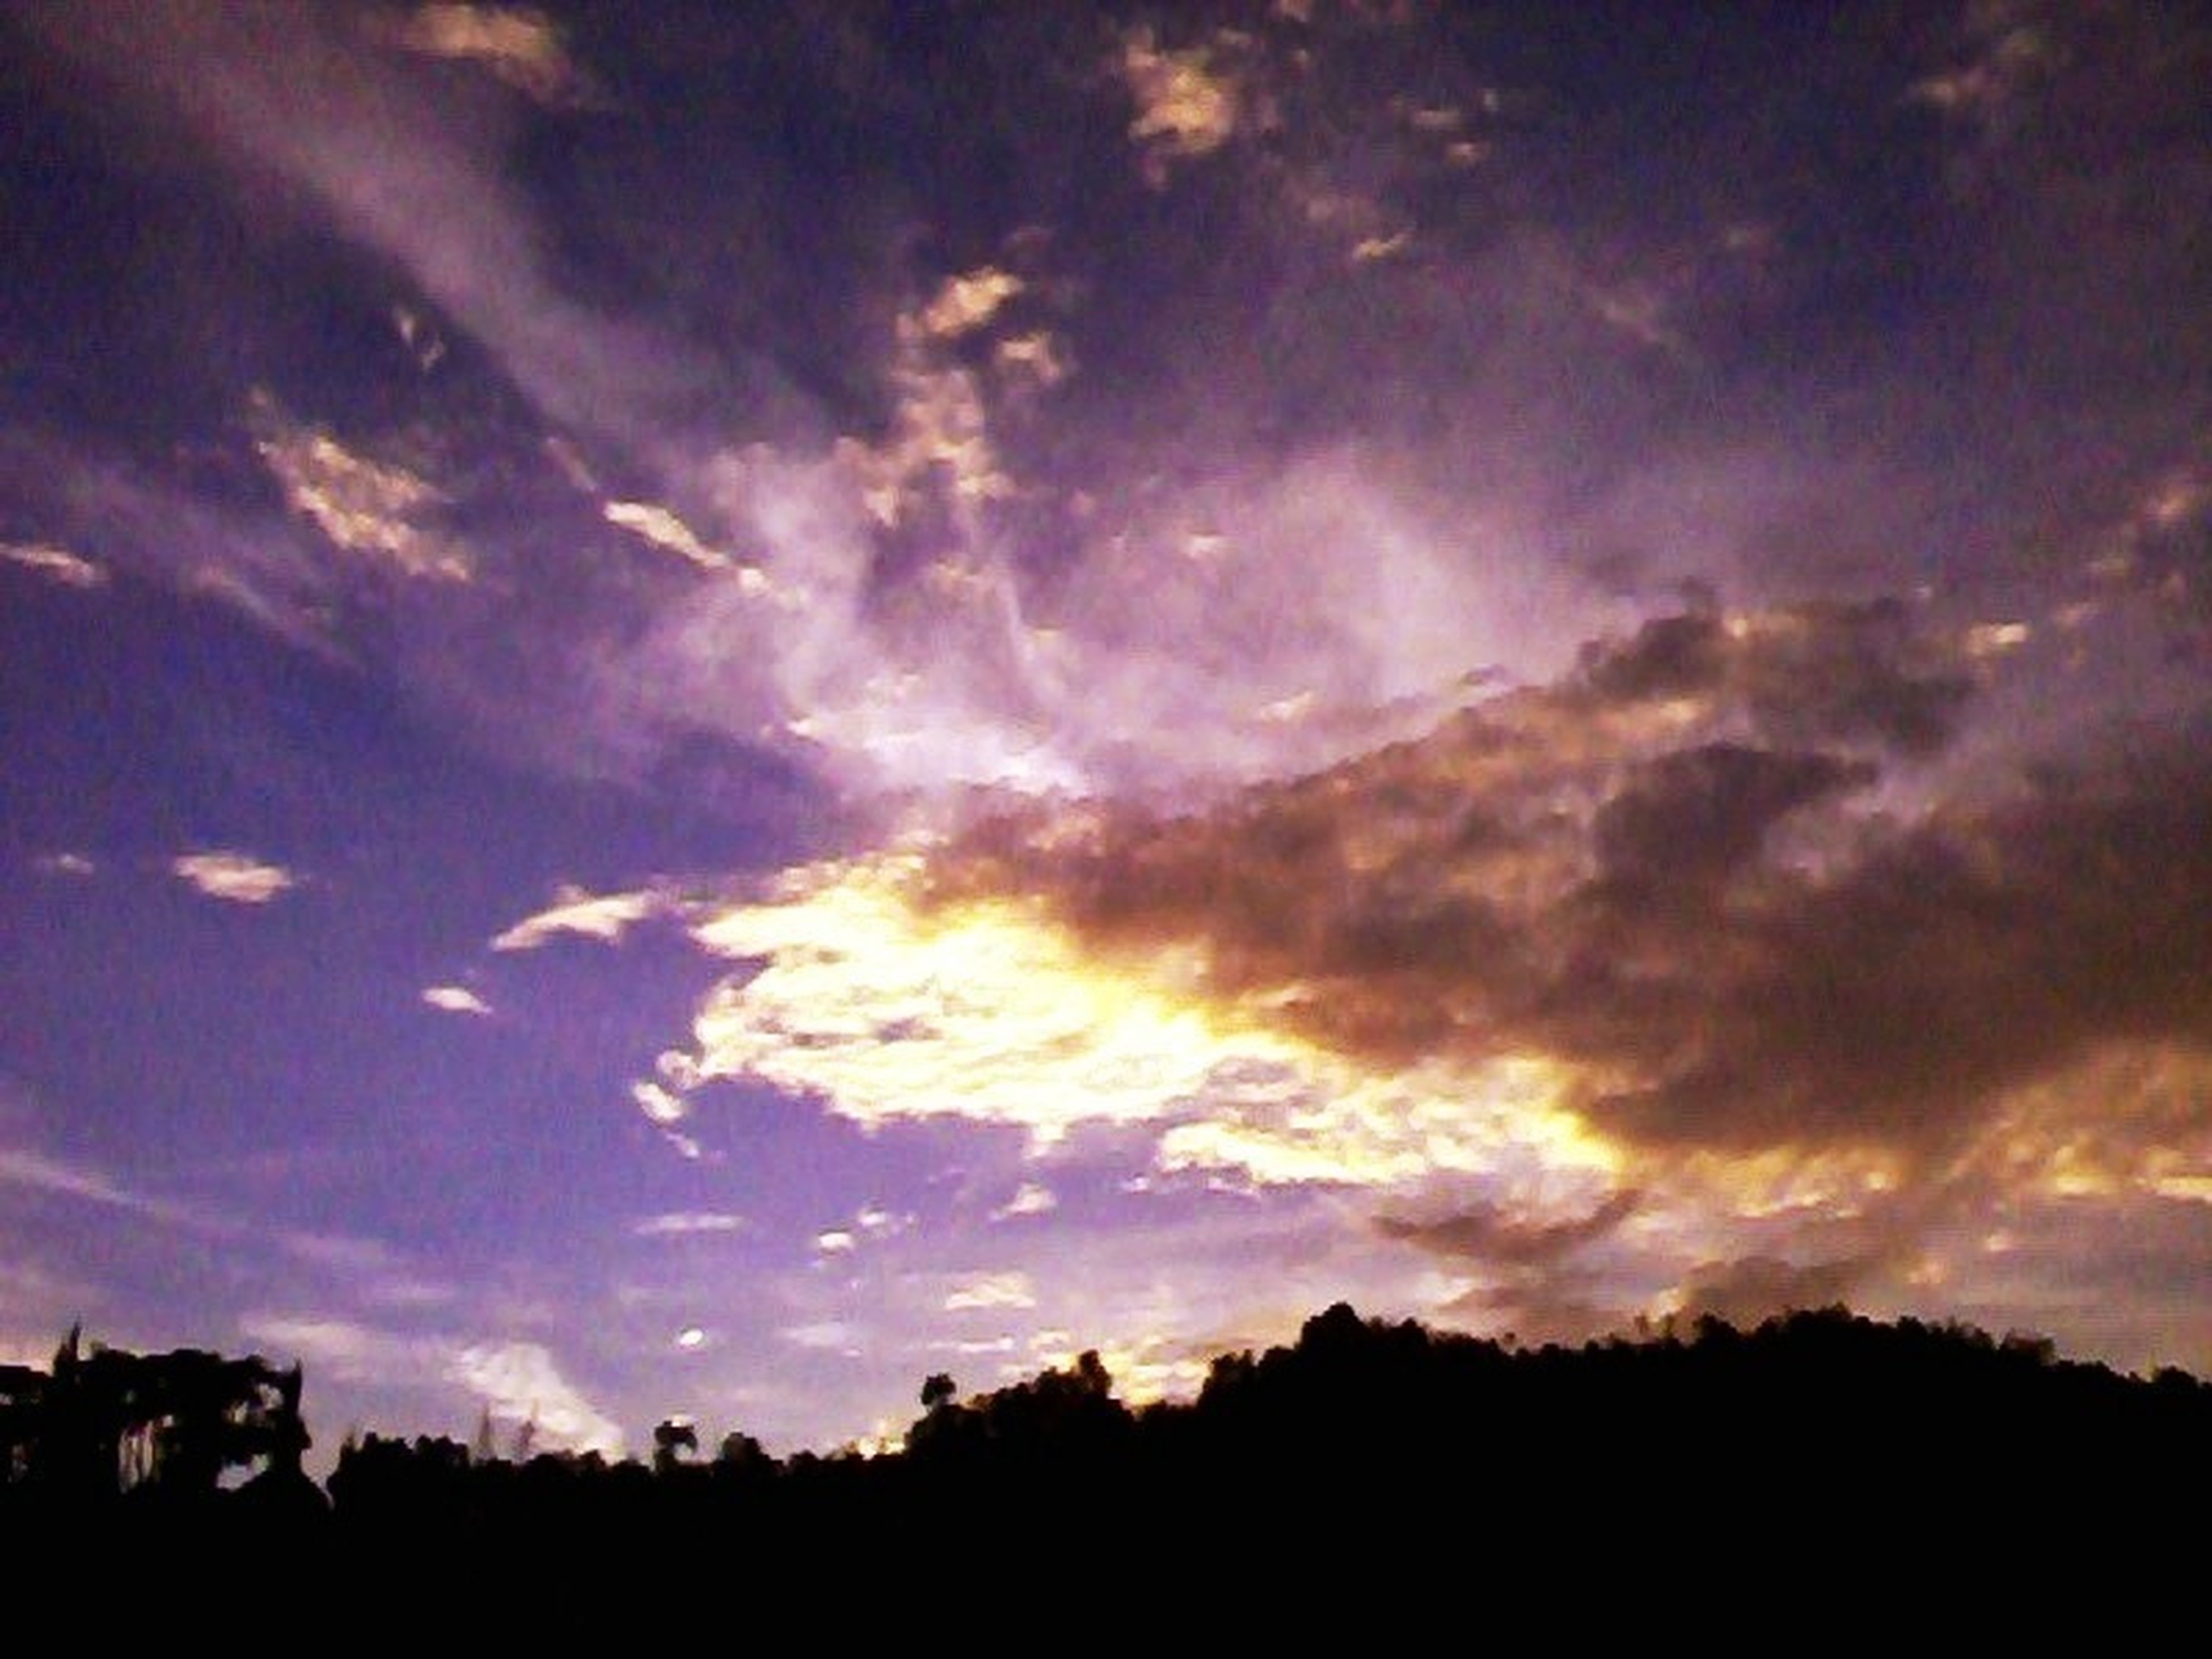 silhouette, sky, tranquil scene, scenics, tranquility, beauty in nature, sunset, tree, cloud - sky, nature, idyllic, cloud, landscape, cloudy, low angle view, dramatic sky, dark, outdoors, dusk, outline